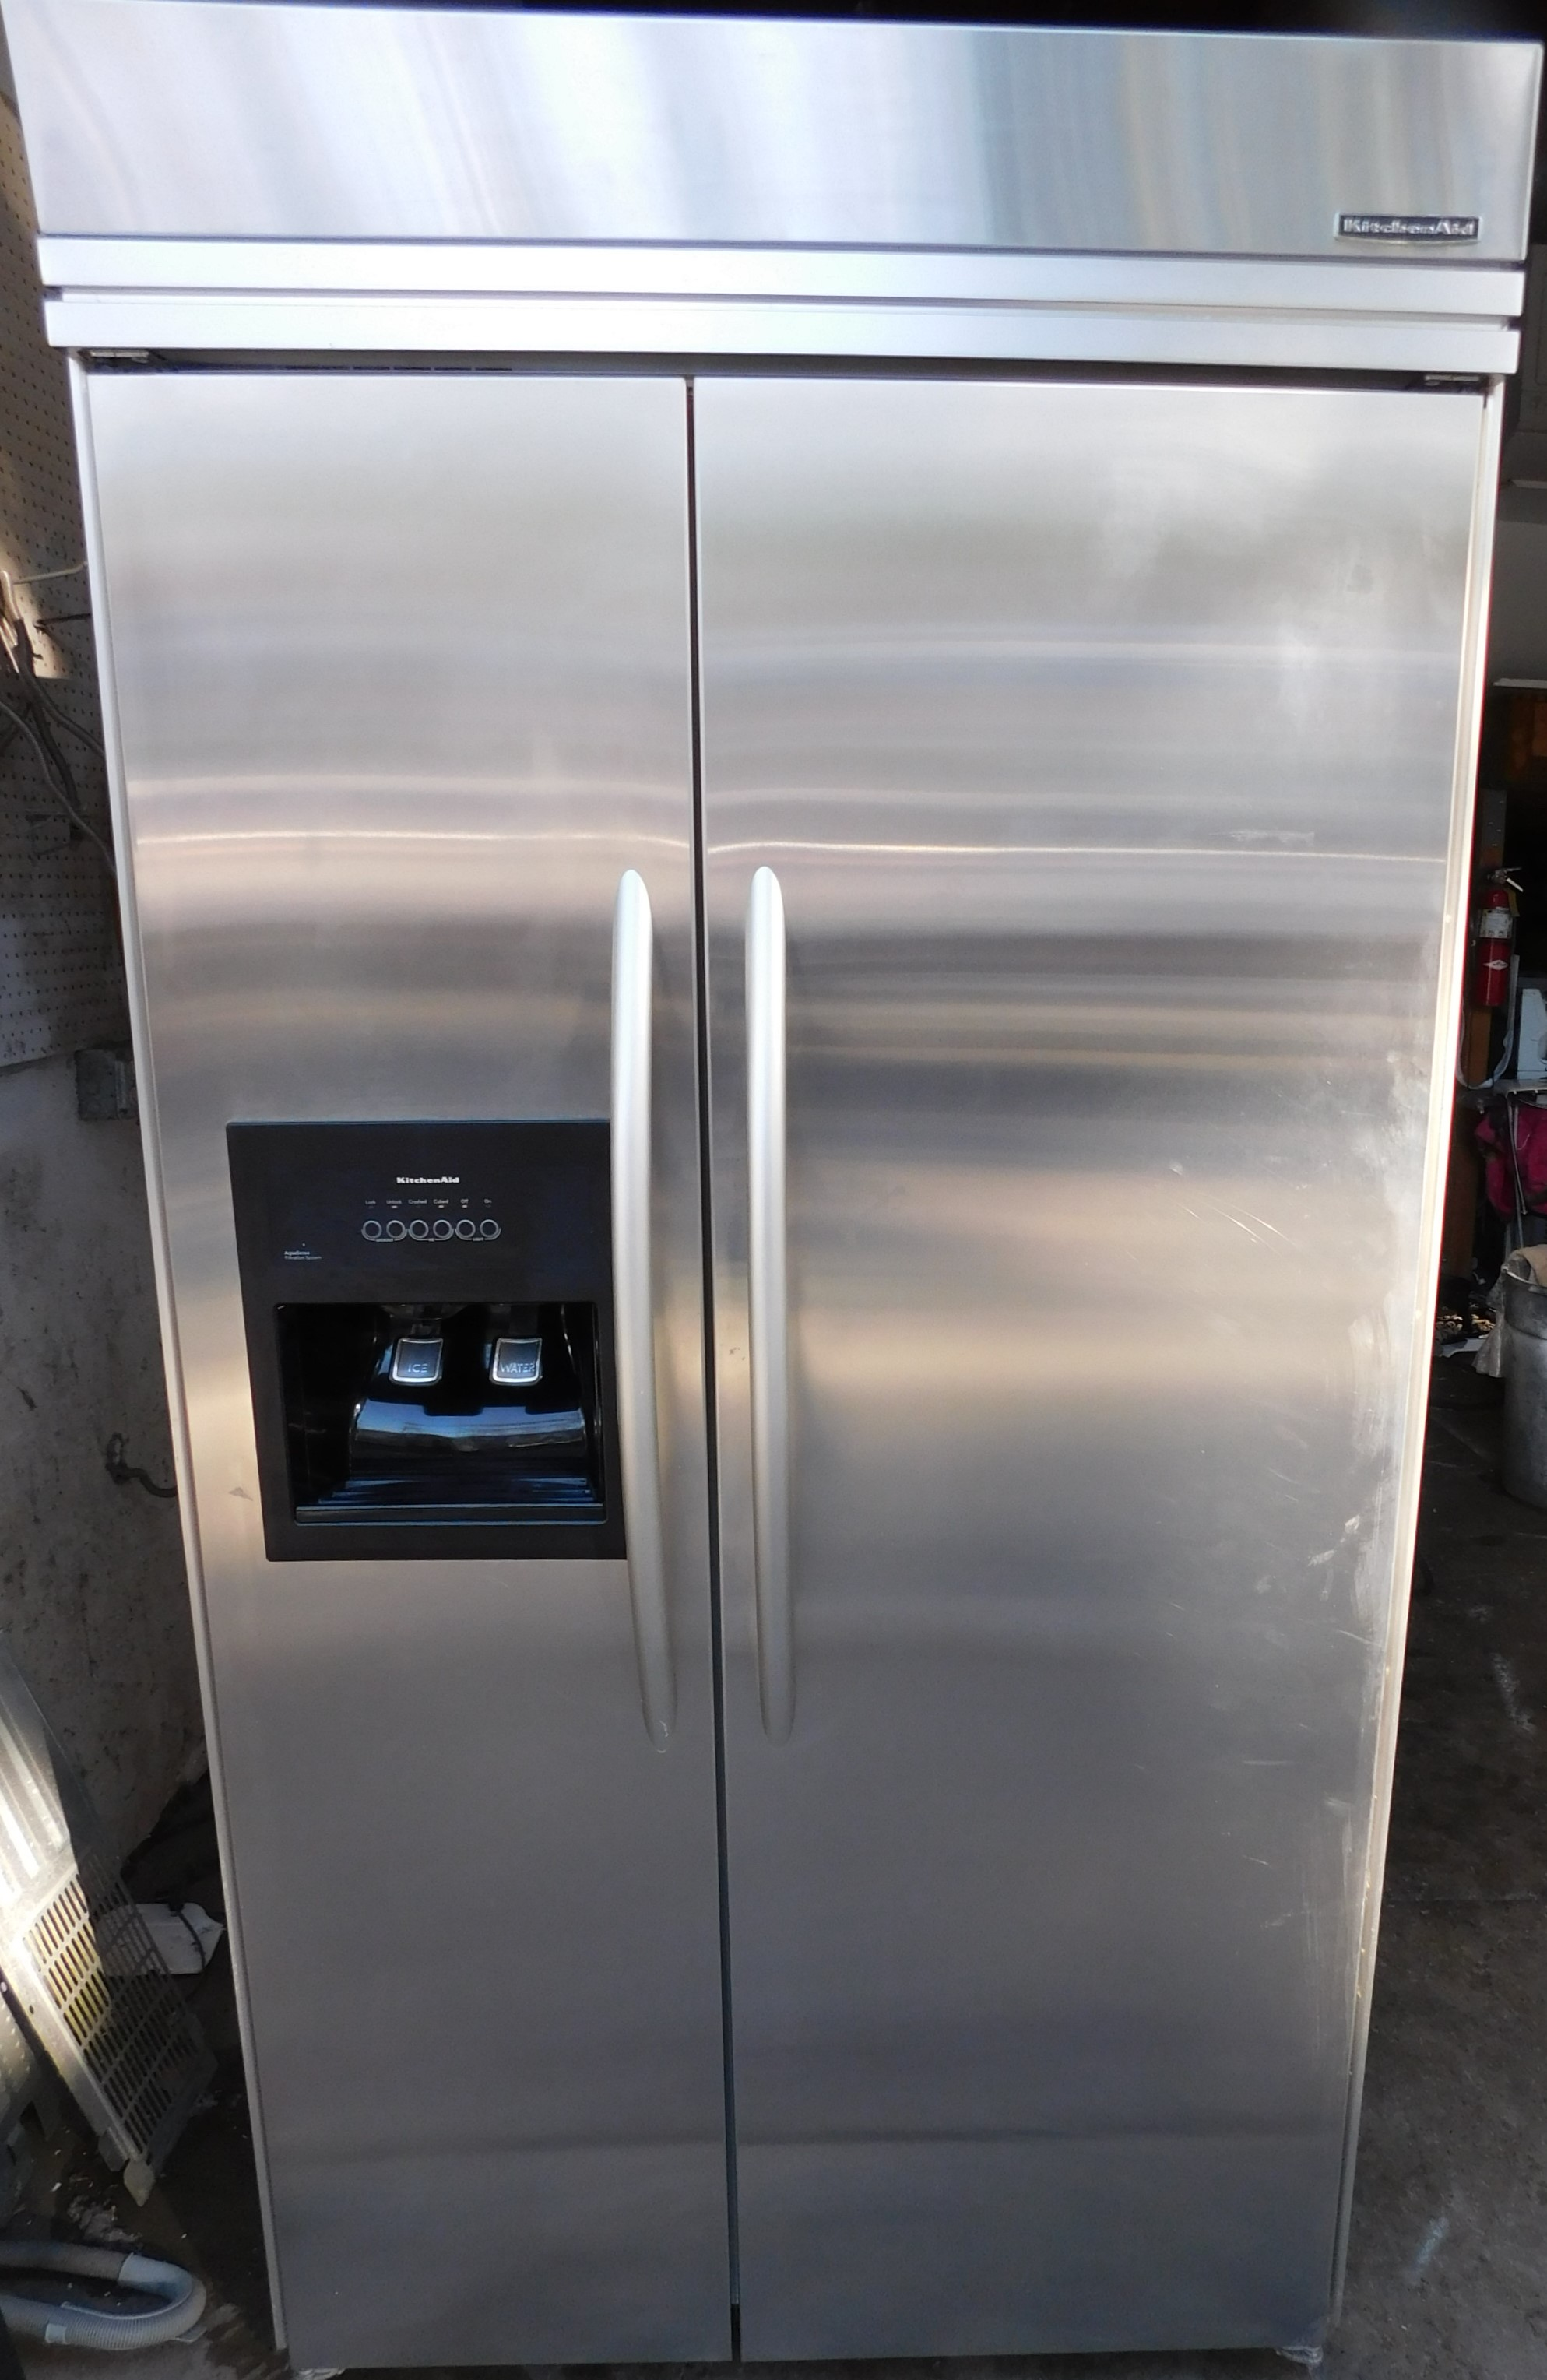 25 CU. FT. KITCHEN AID STAINLESS STEEL SIDE-BY-SIDE BUILT-IN 42 INCH  REFRIGERATOR B-98- BLOWOUT PRICE!- saed bought 1-15-20